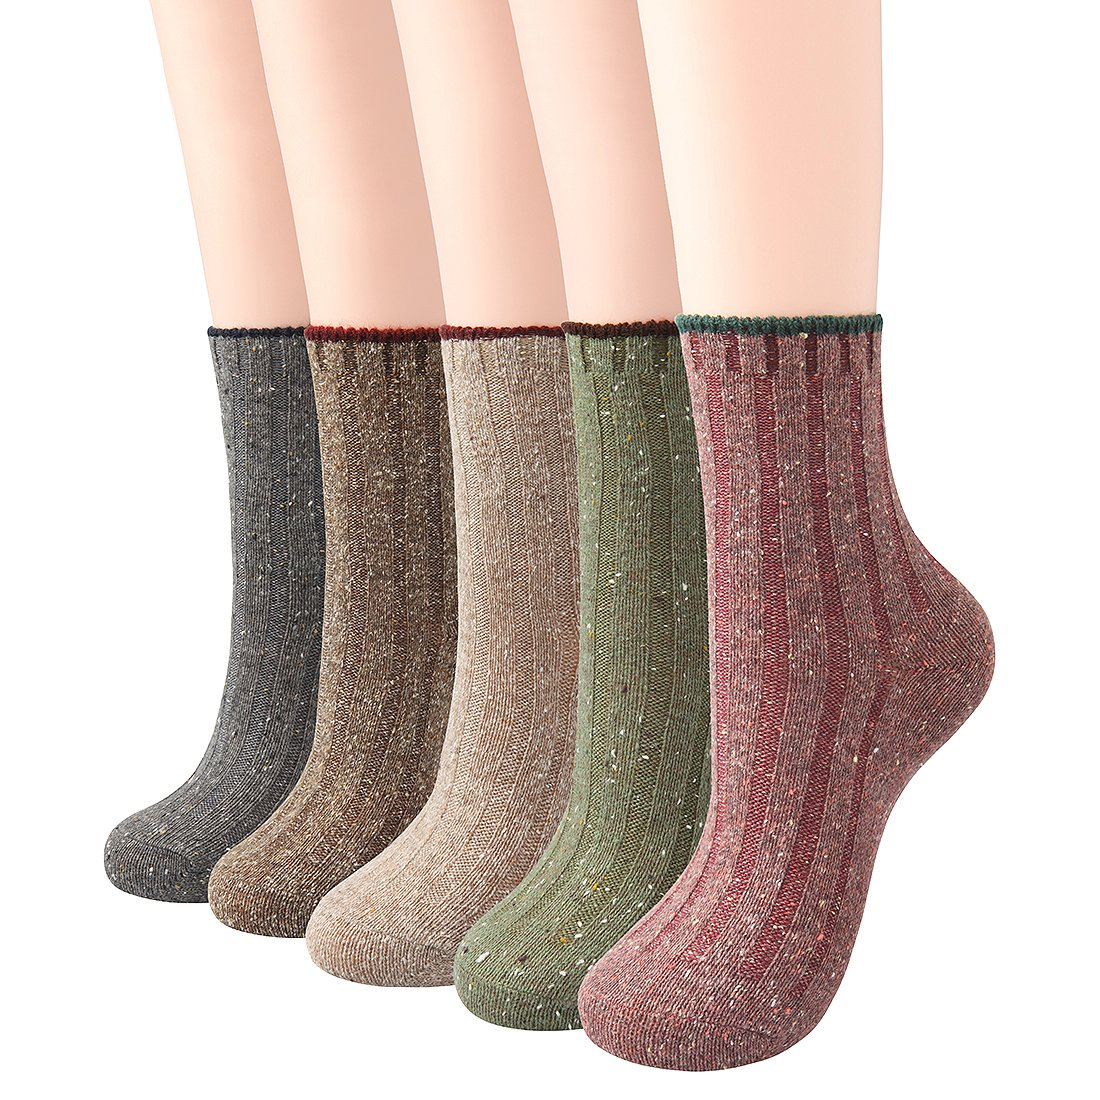 ChicNChic Women Warm Socks Casual Soft Cotton Blend Ribbed Knit Colorful Crew Socks 5 Pack (One Size, Multicolored 1)